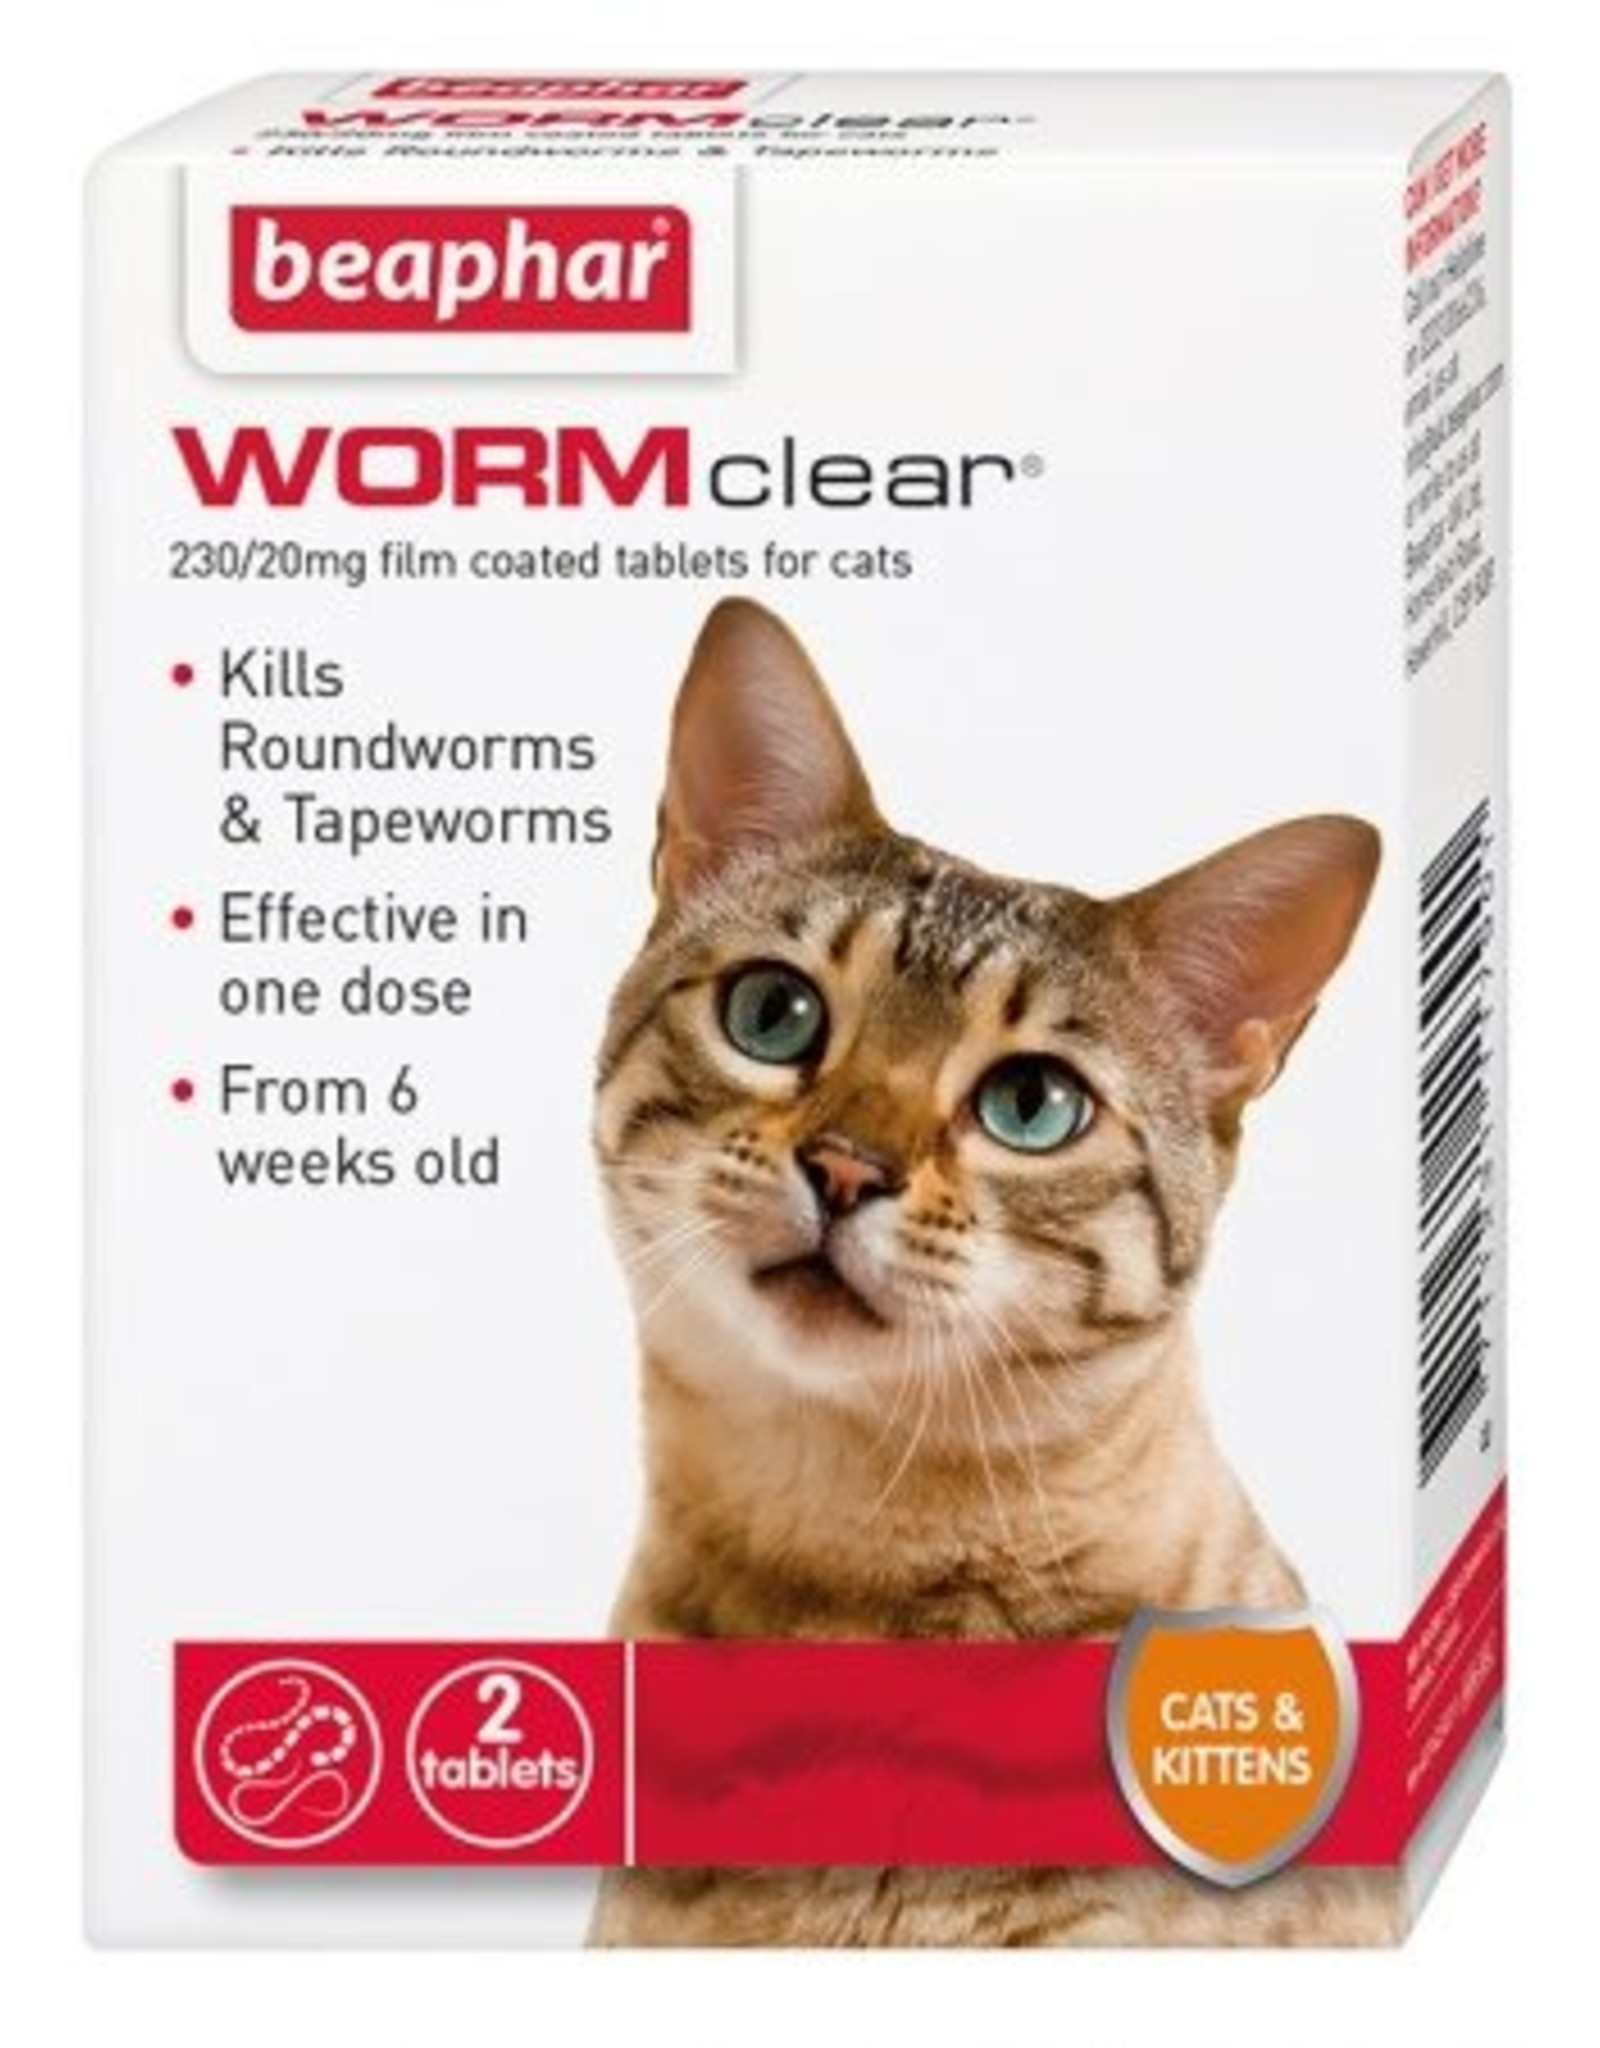 Beaphar WORMclear Cat One Dose Wormer for Cats & Kittens, 2 Tablets